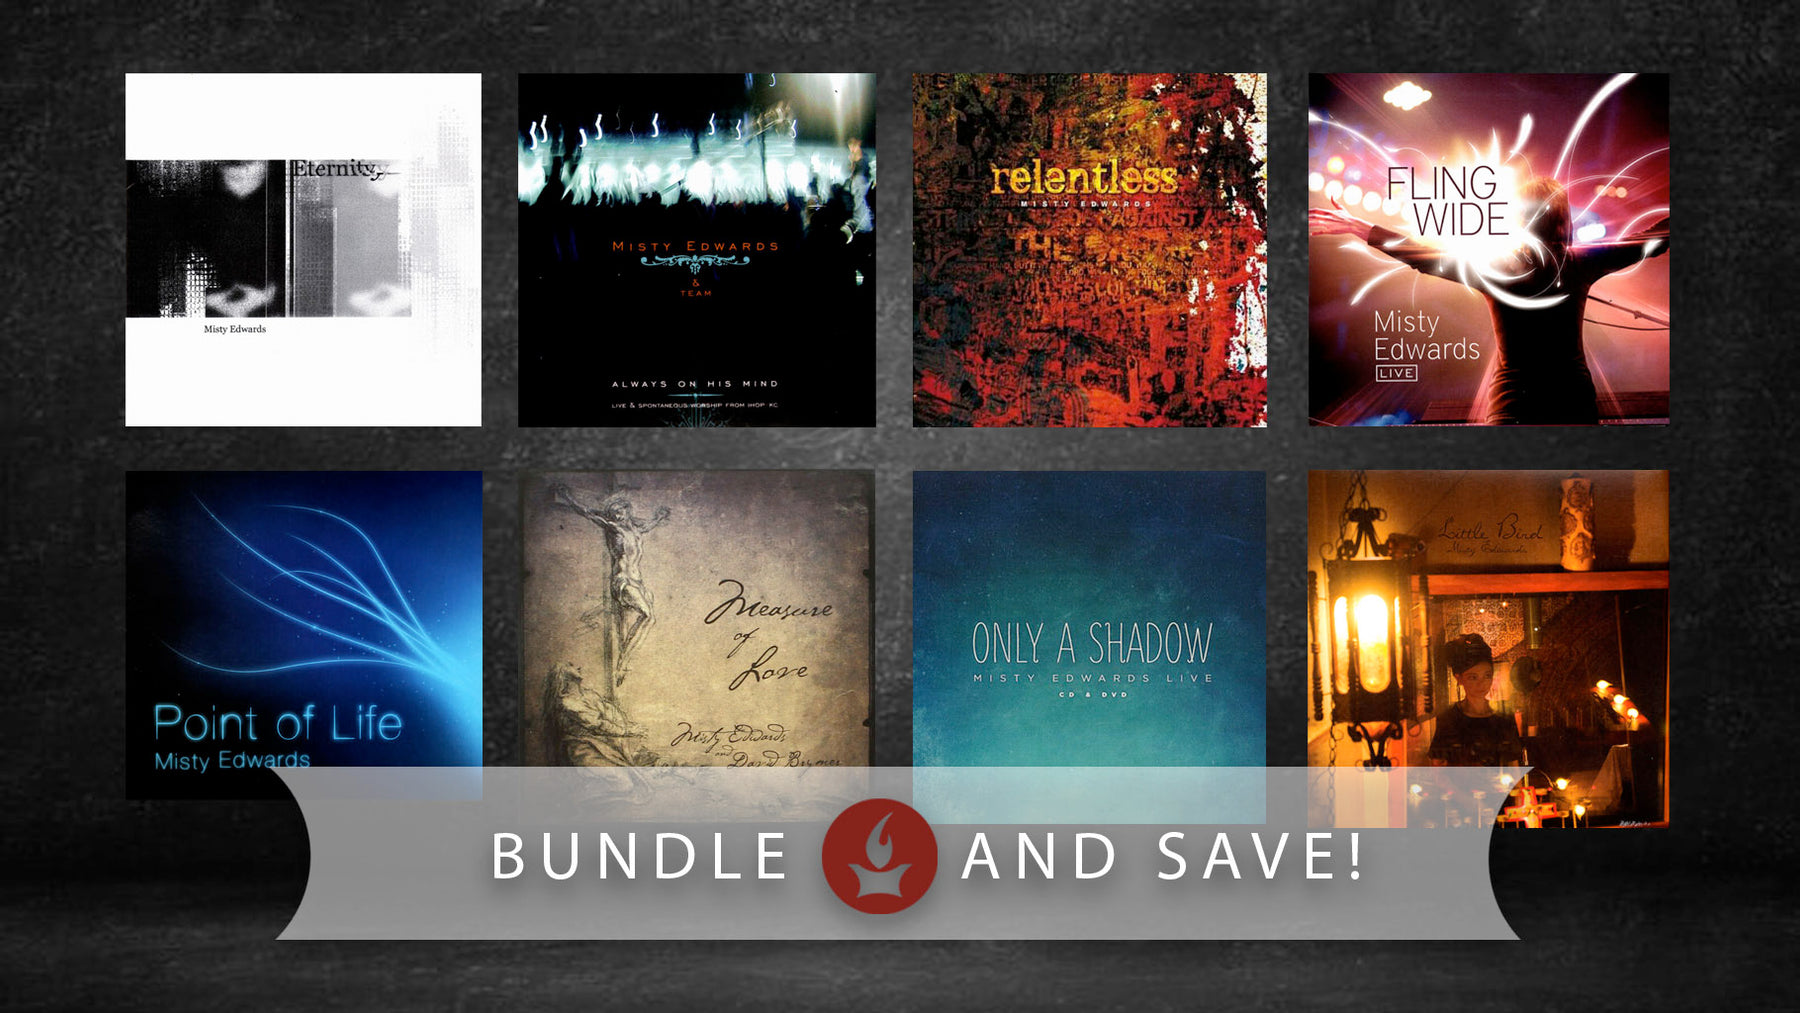 Misty Edwards Album Collection Bundle